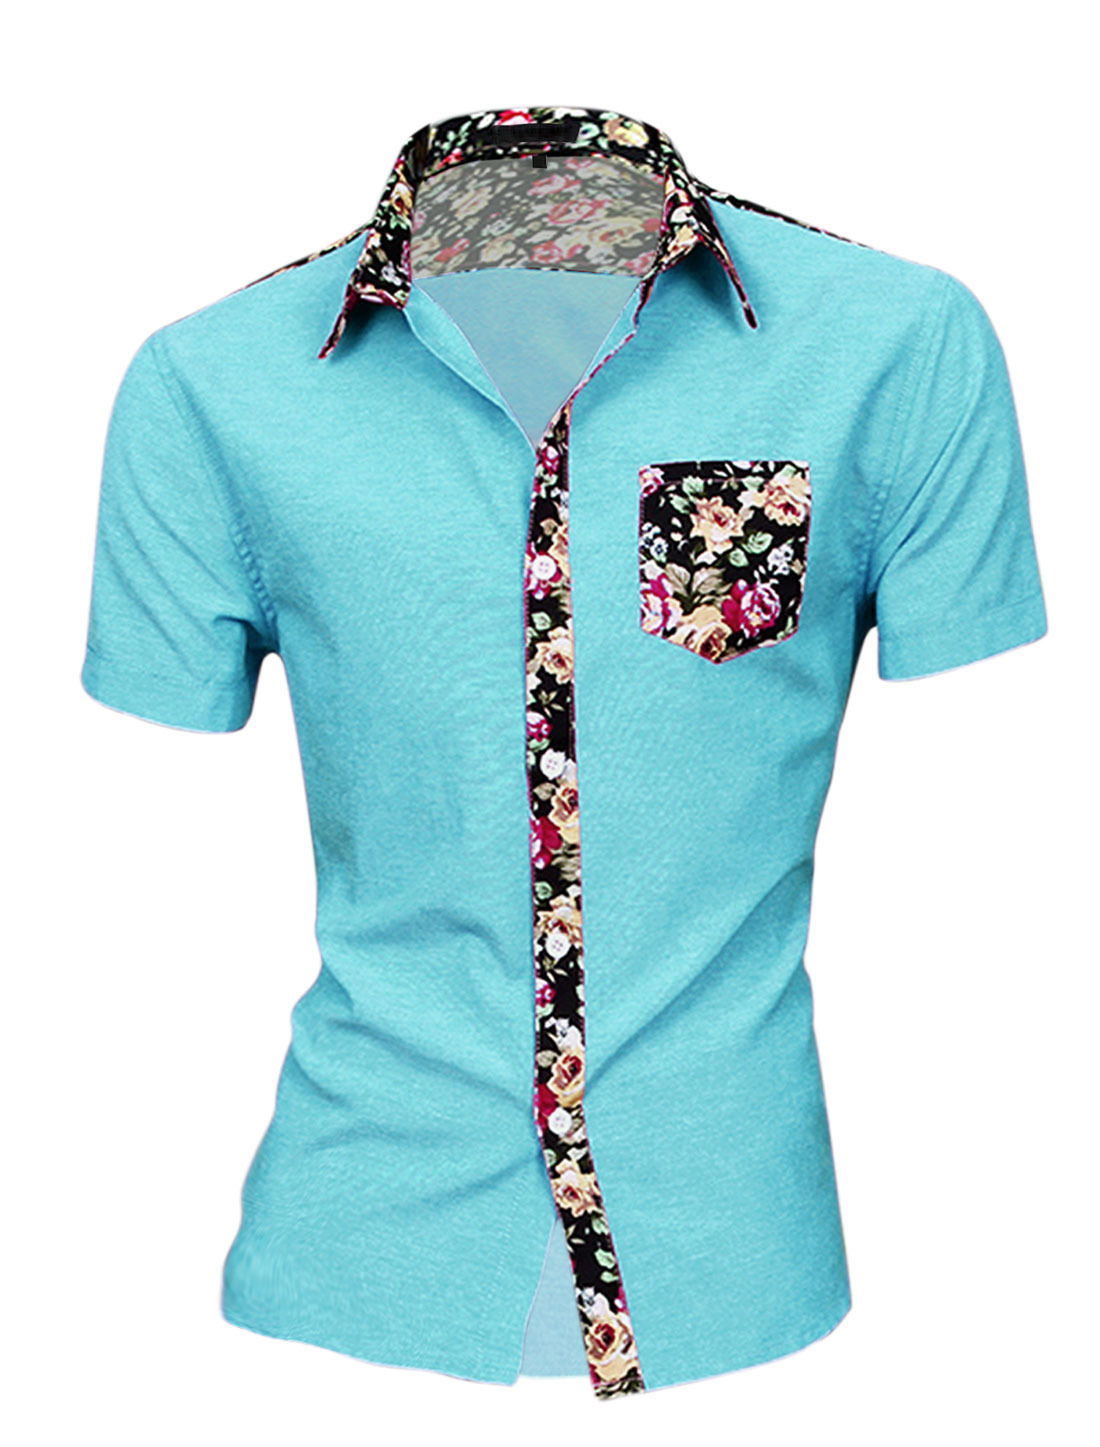 Men Short Sleeve Floral Print Button Down Shirt Sky Blue S